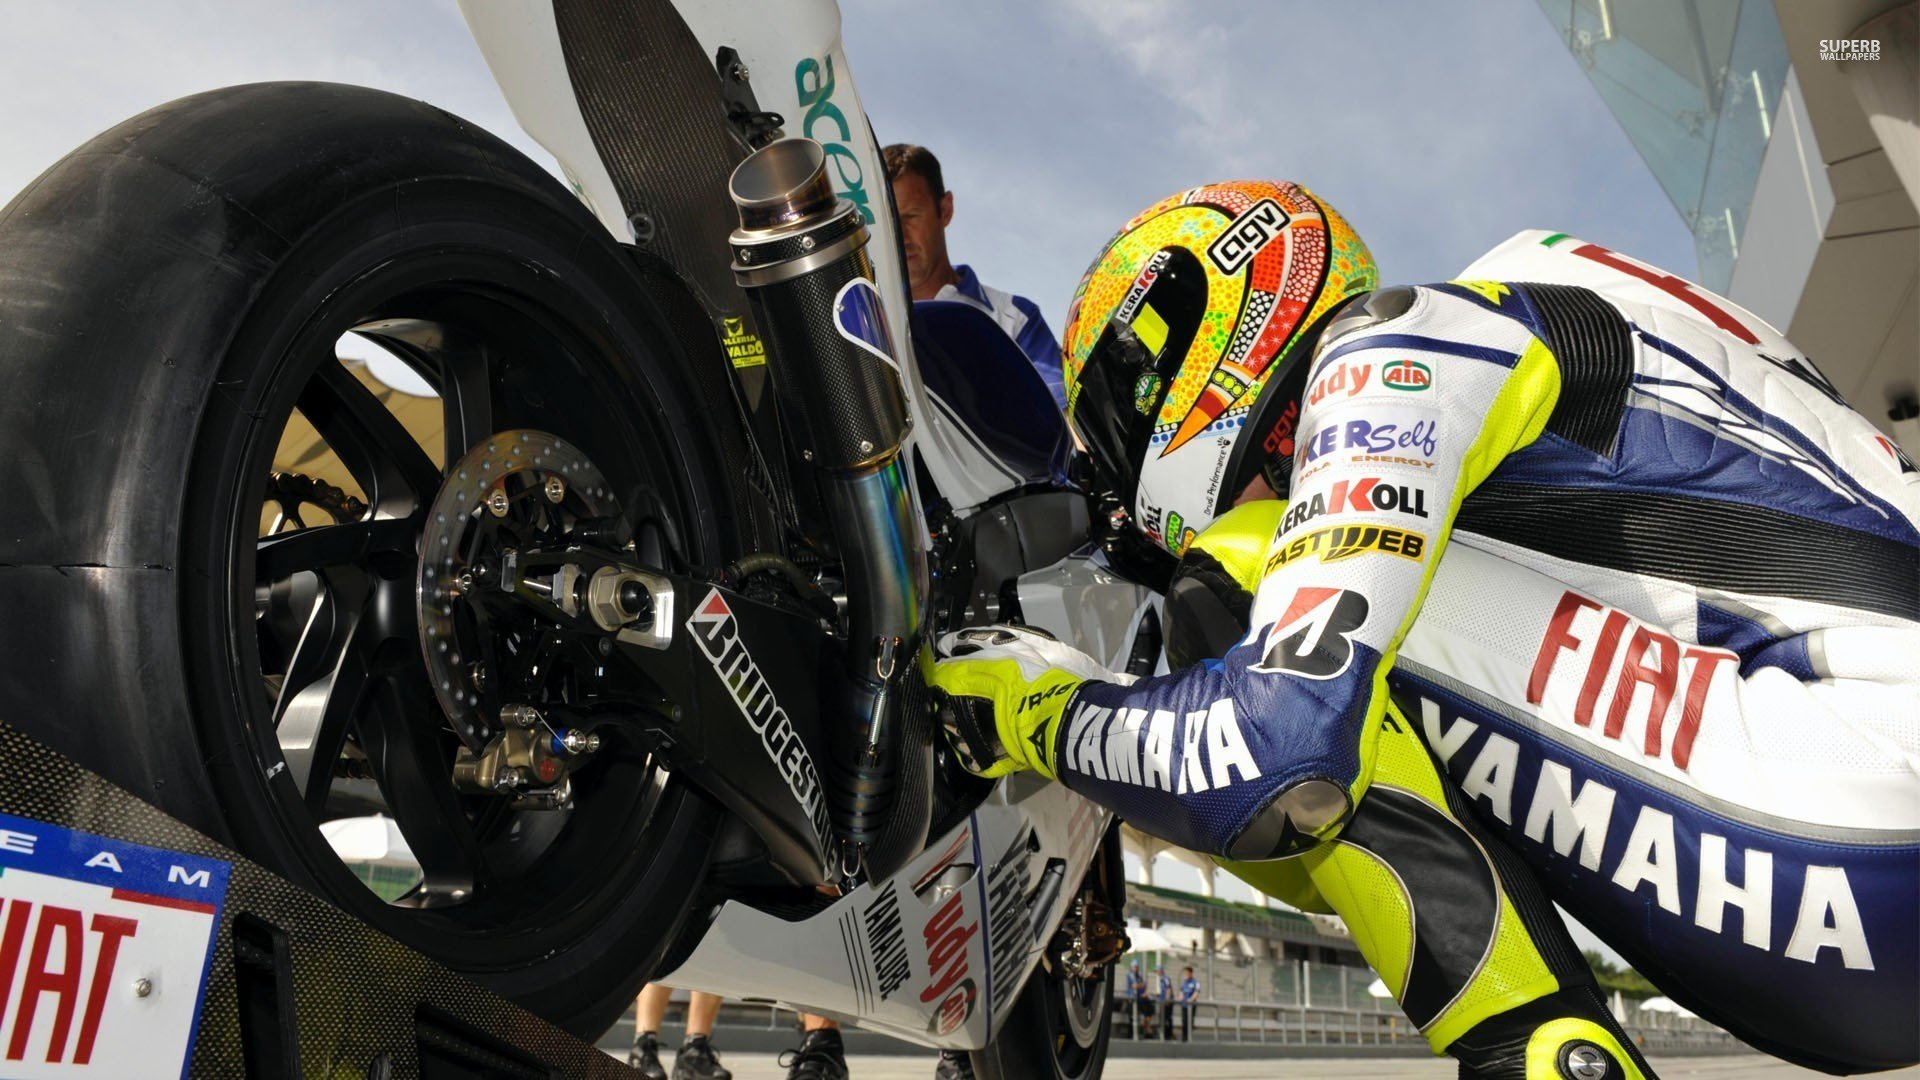 Valentino Rossi Motorcycle wallpapers Wide Screen Wallpaper 1080p2K 1920x1080